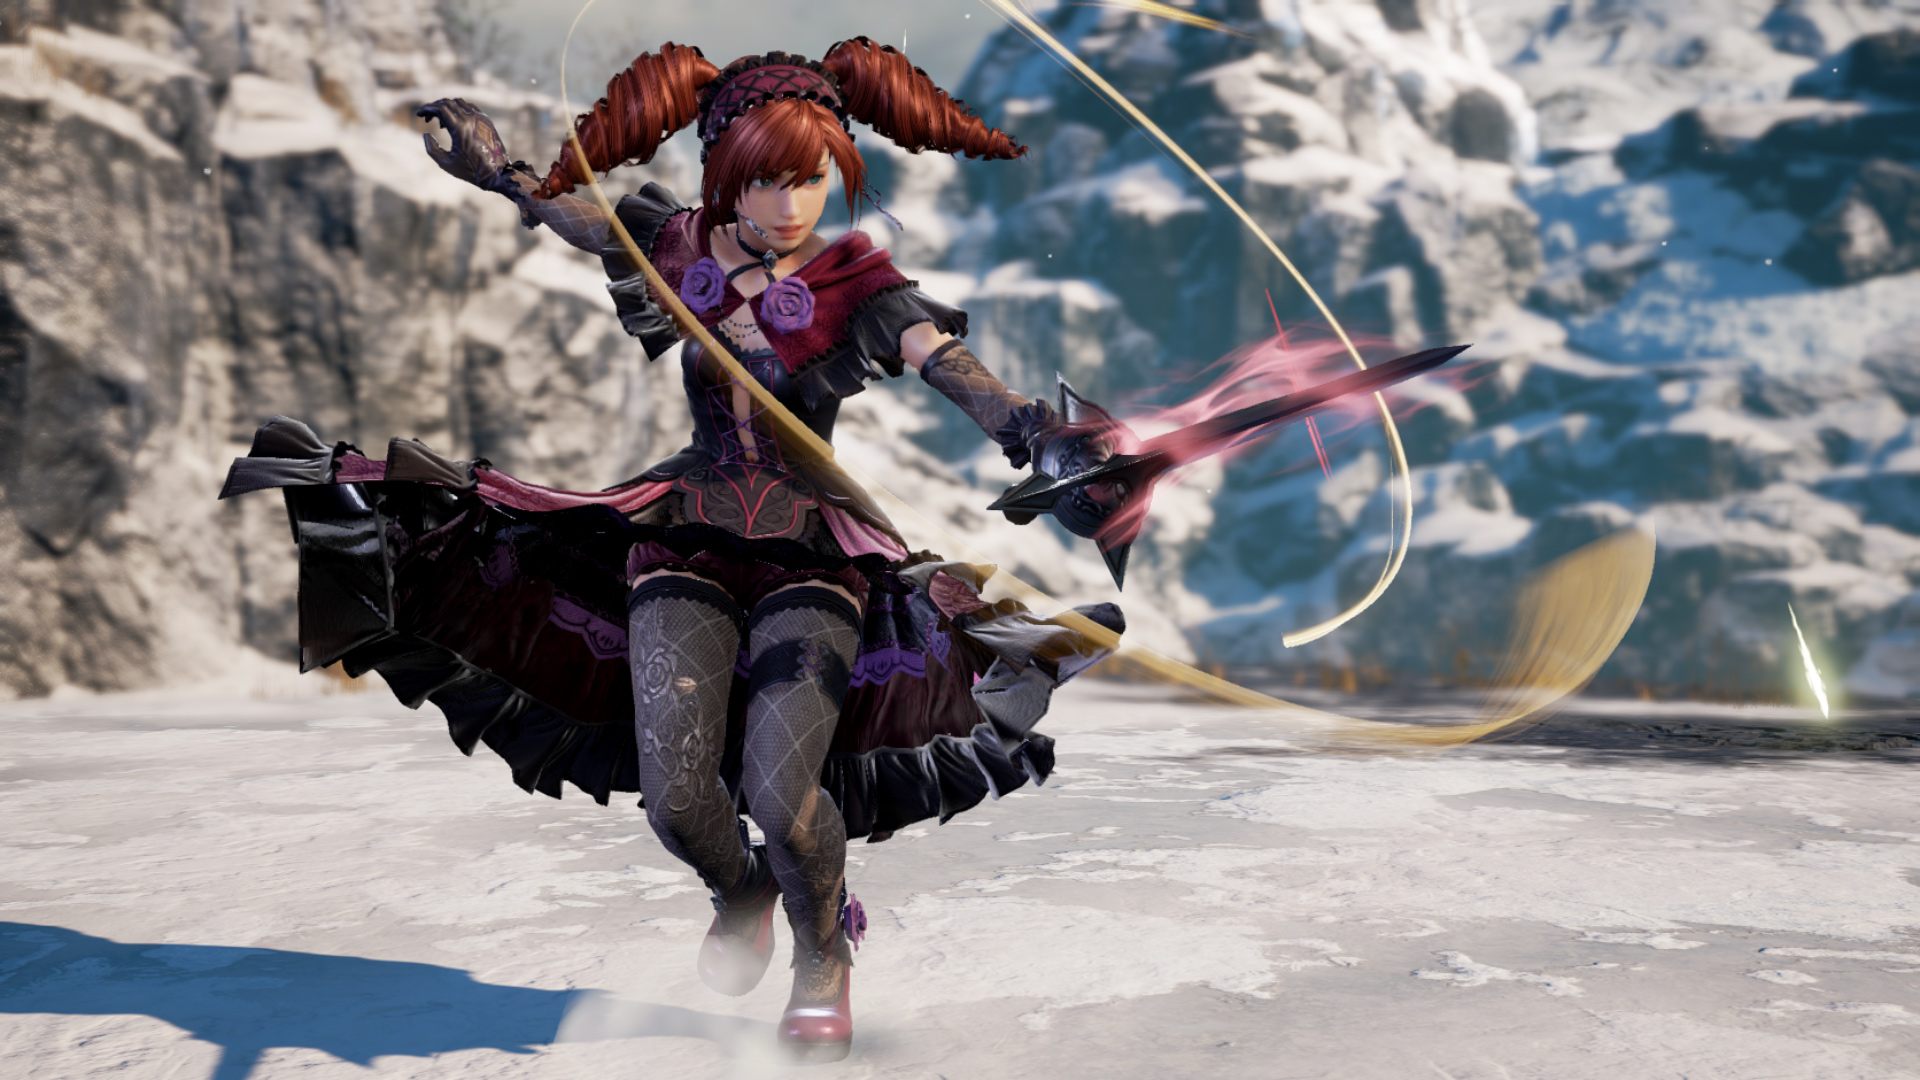 Amy Announced As The Next DLC Character For SoulCalibur VI